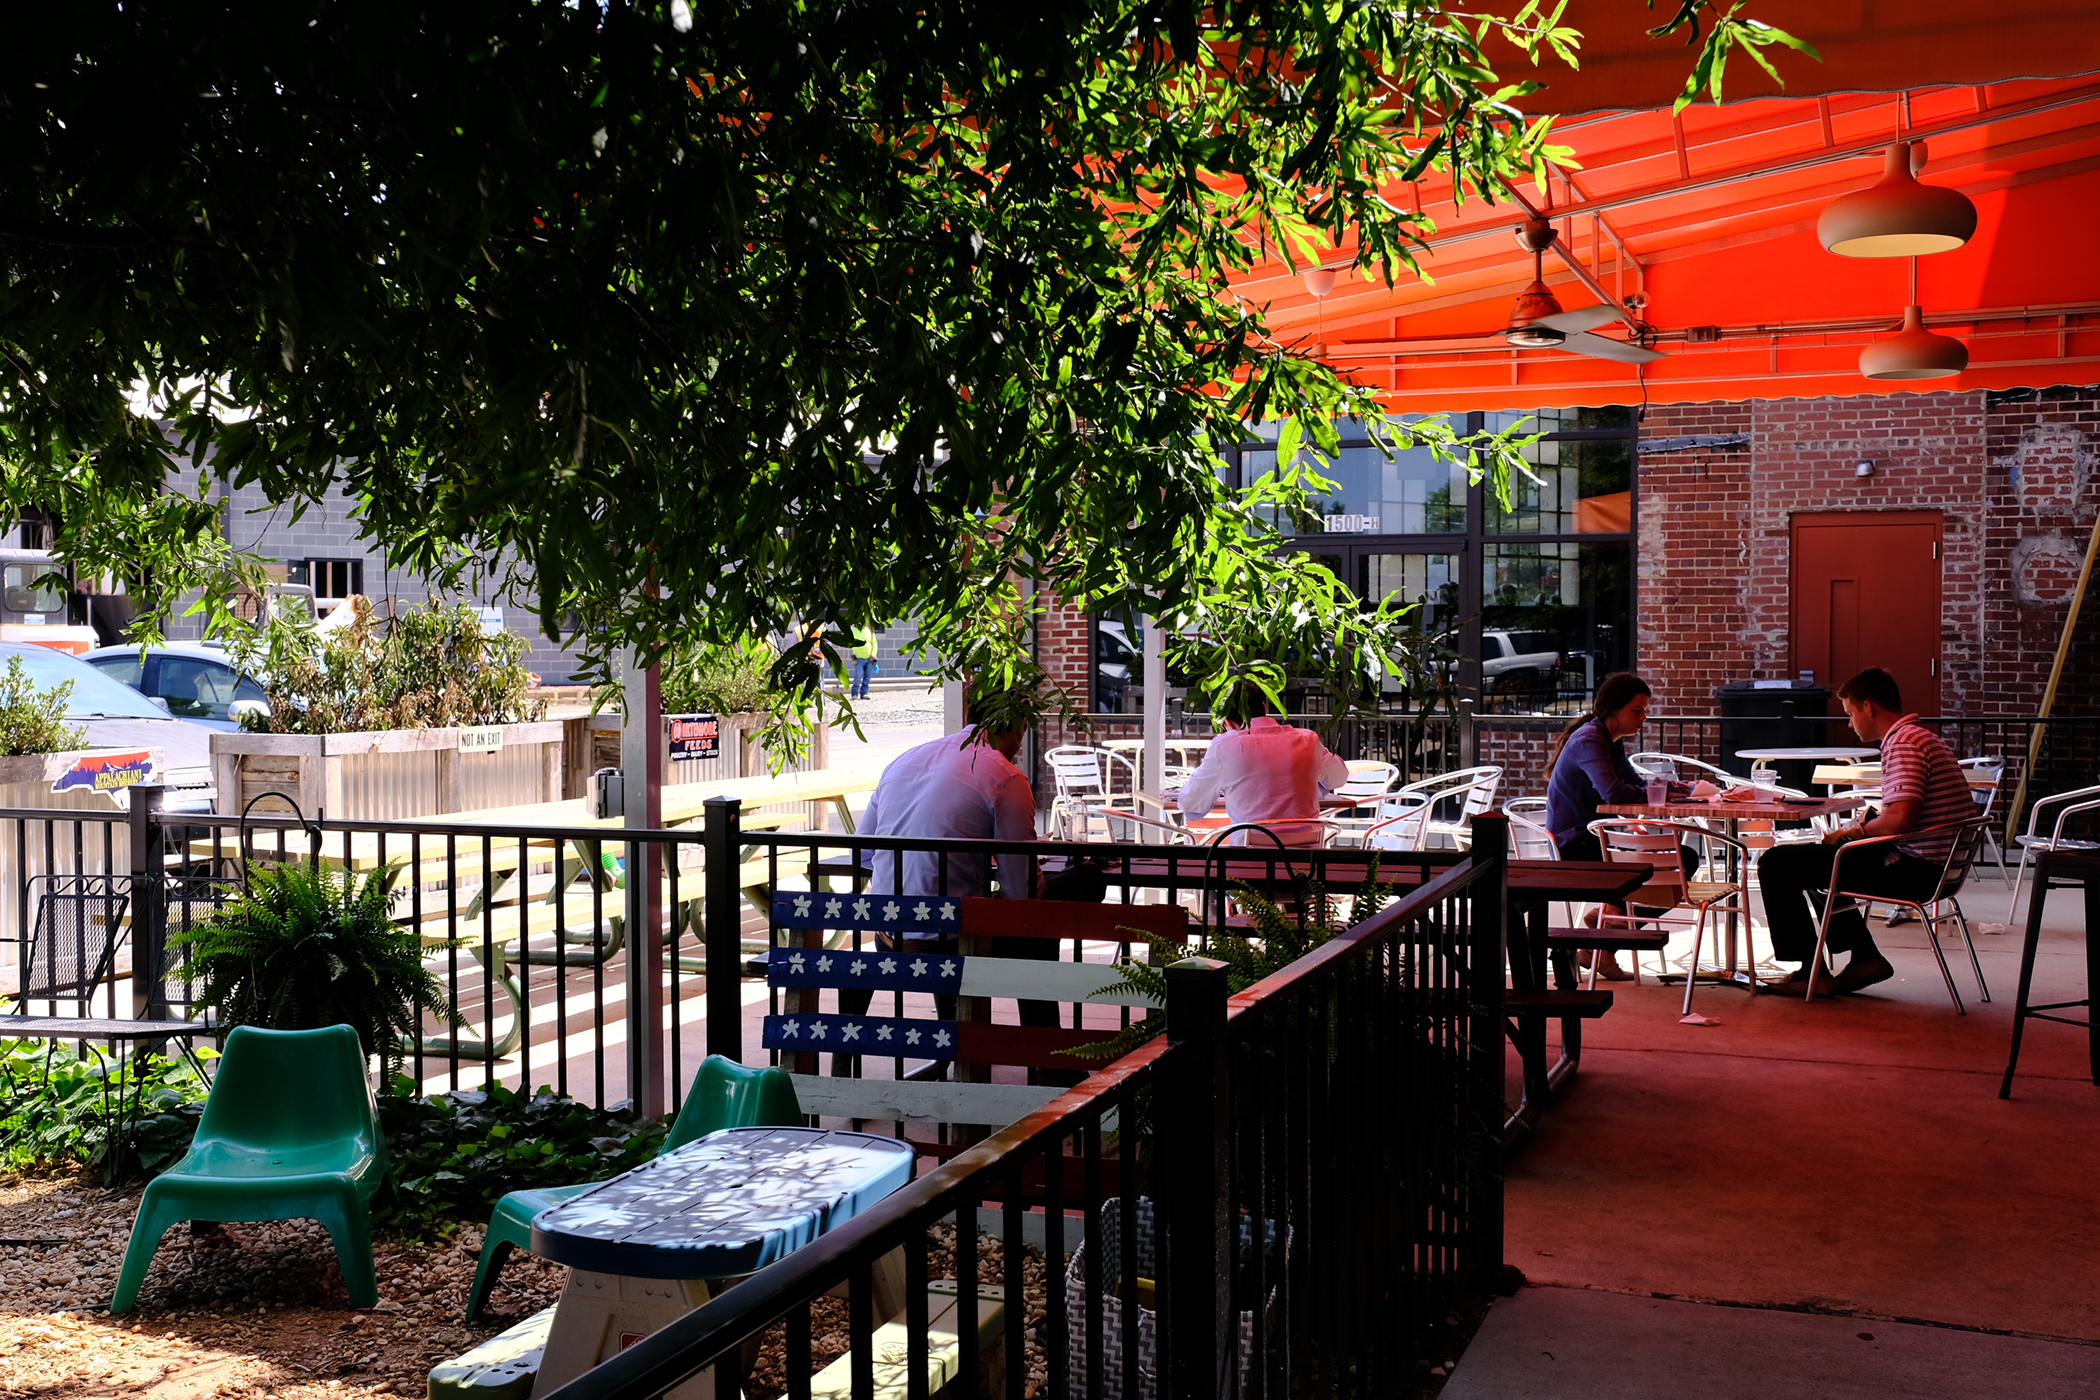 rhino-market-deli-patio-wesley-heights.jpg